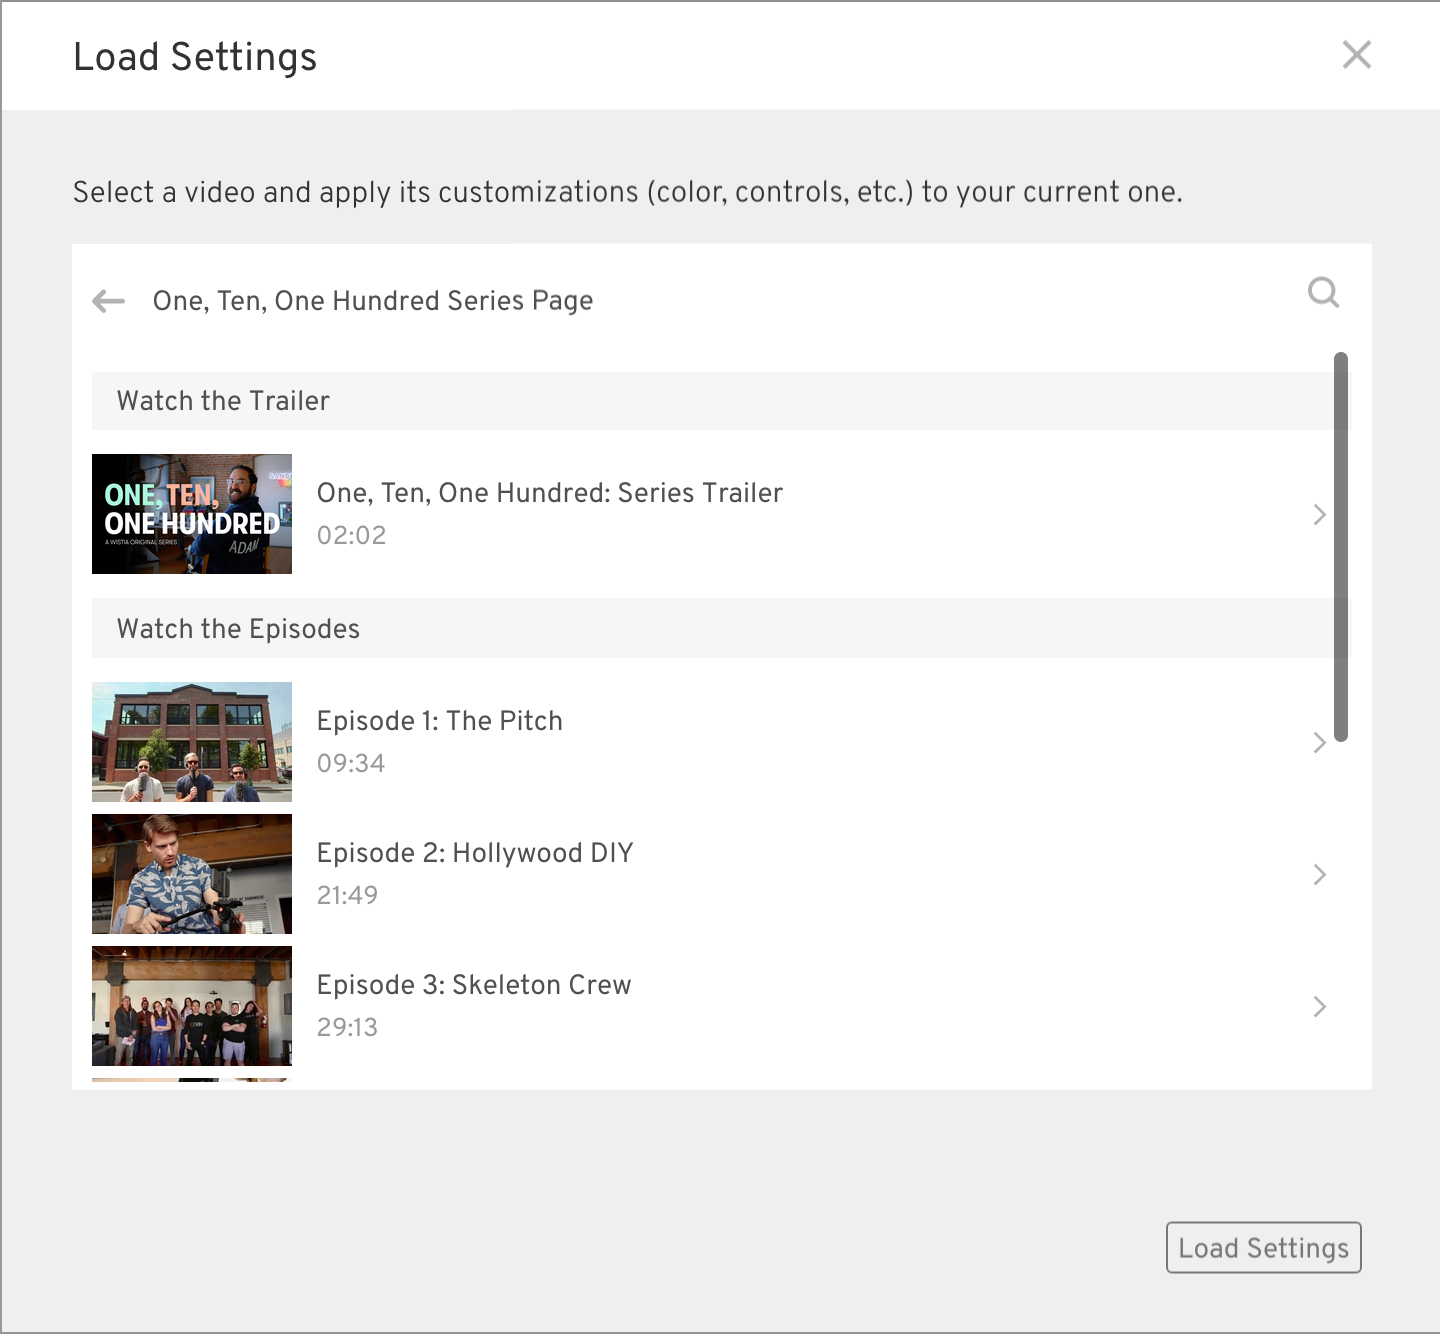 Customize your video v3 - load settings